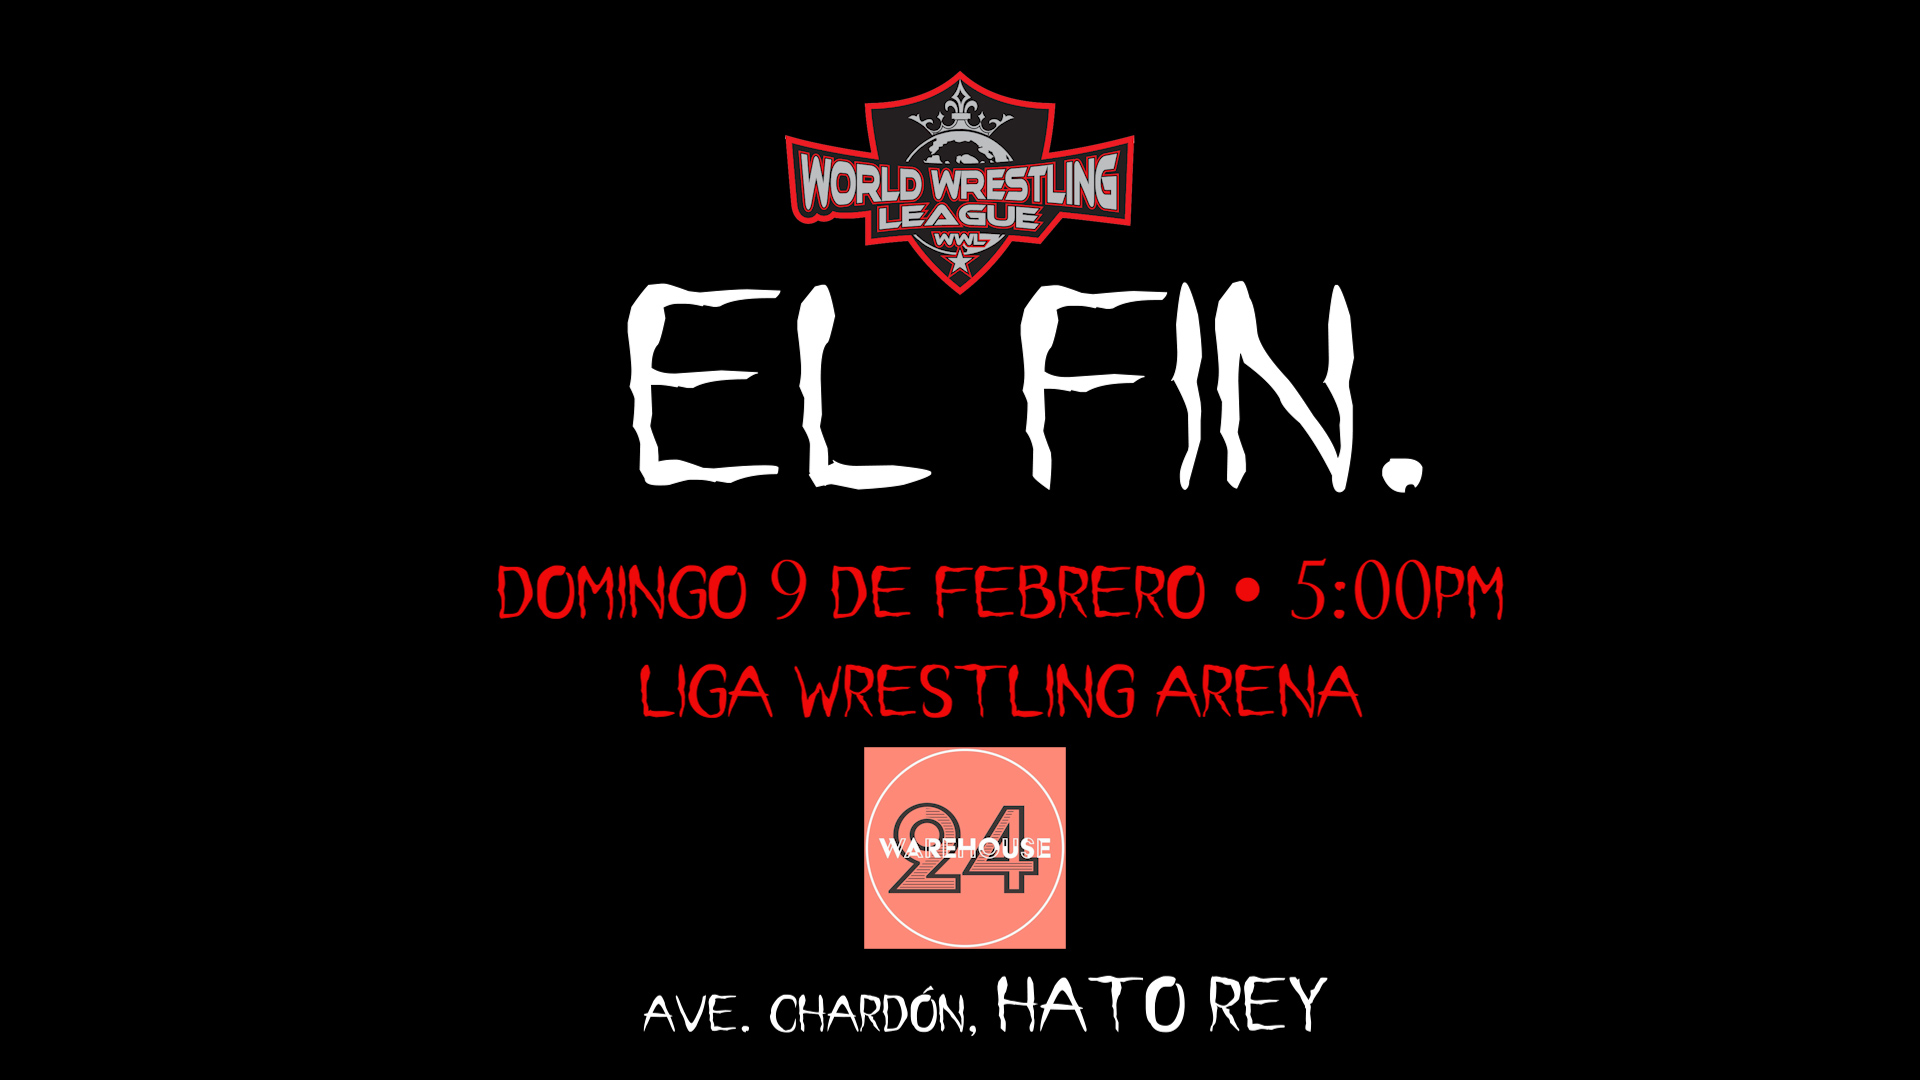 The END of WWL arrives and Wrestling League is born in Puerto Rico 4